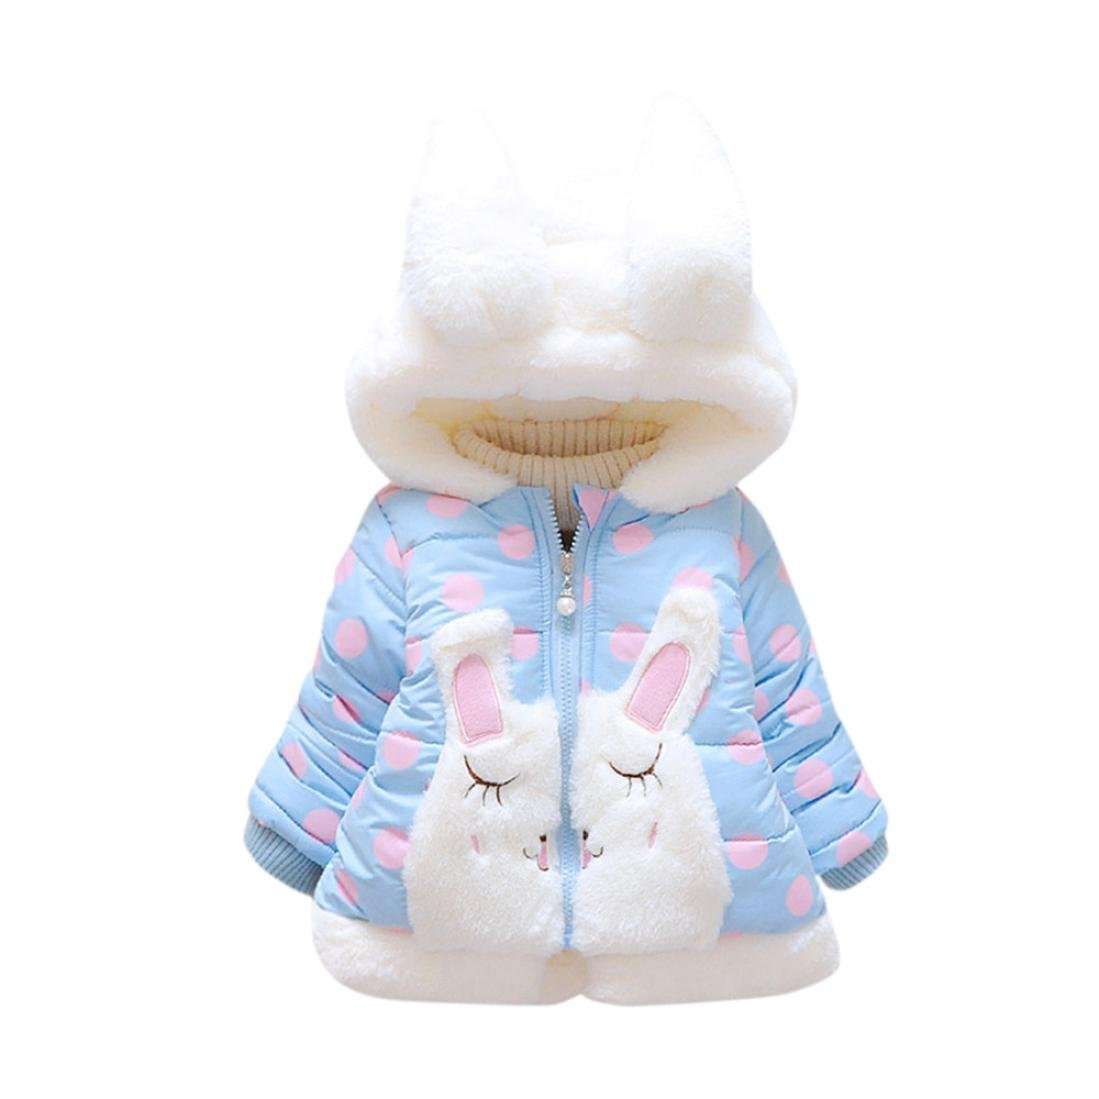 Girls Coats, SHOBDW Baby Girls Autumn Winter Hooded Cloak Thick Warm Coat Jacket Infant Clothes SHOBDW-99